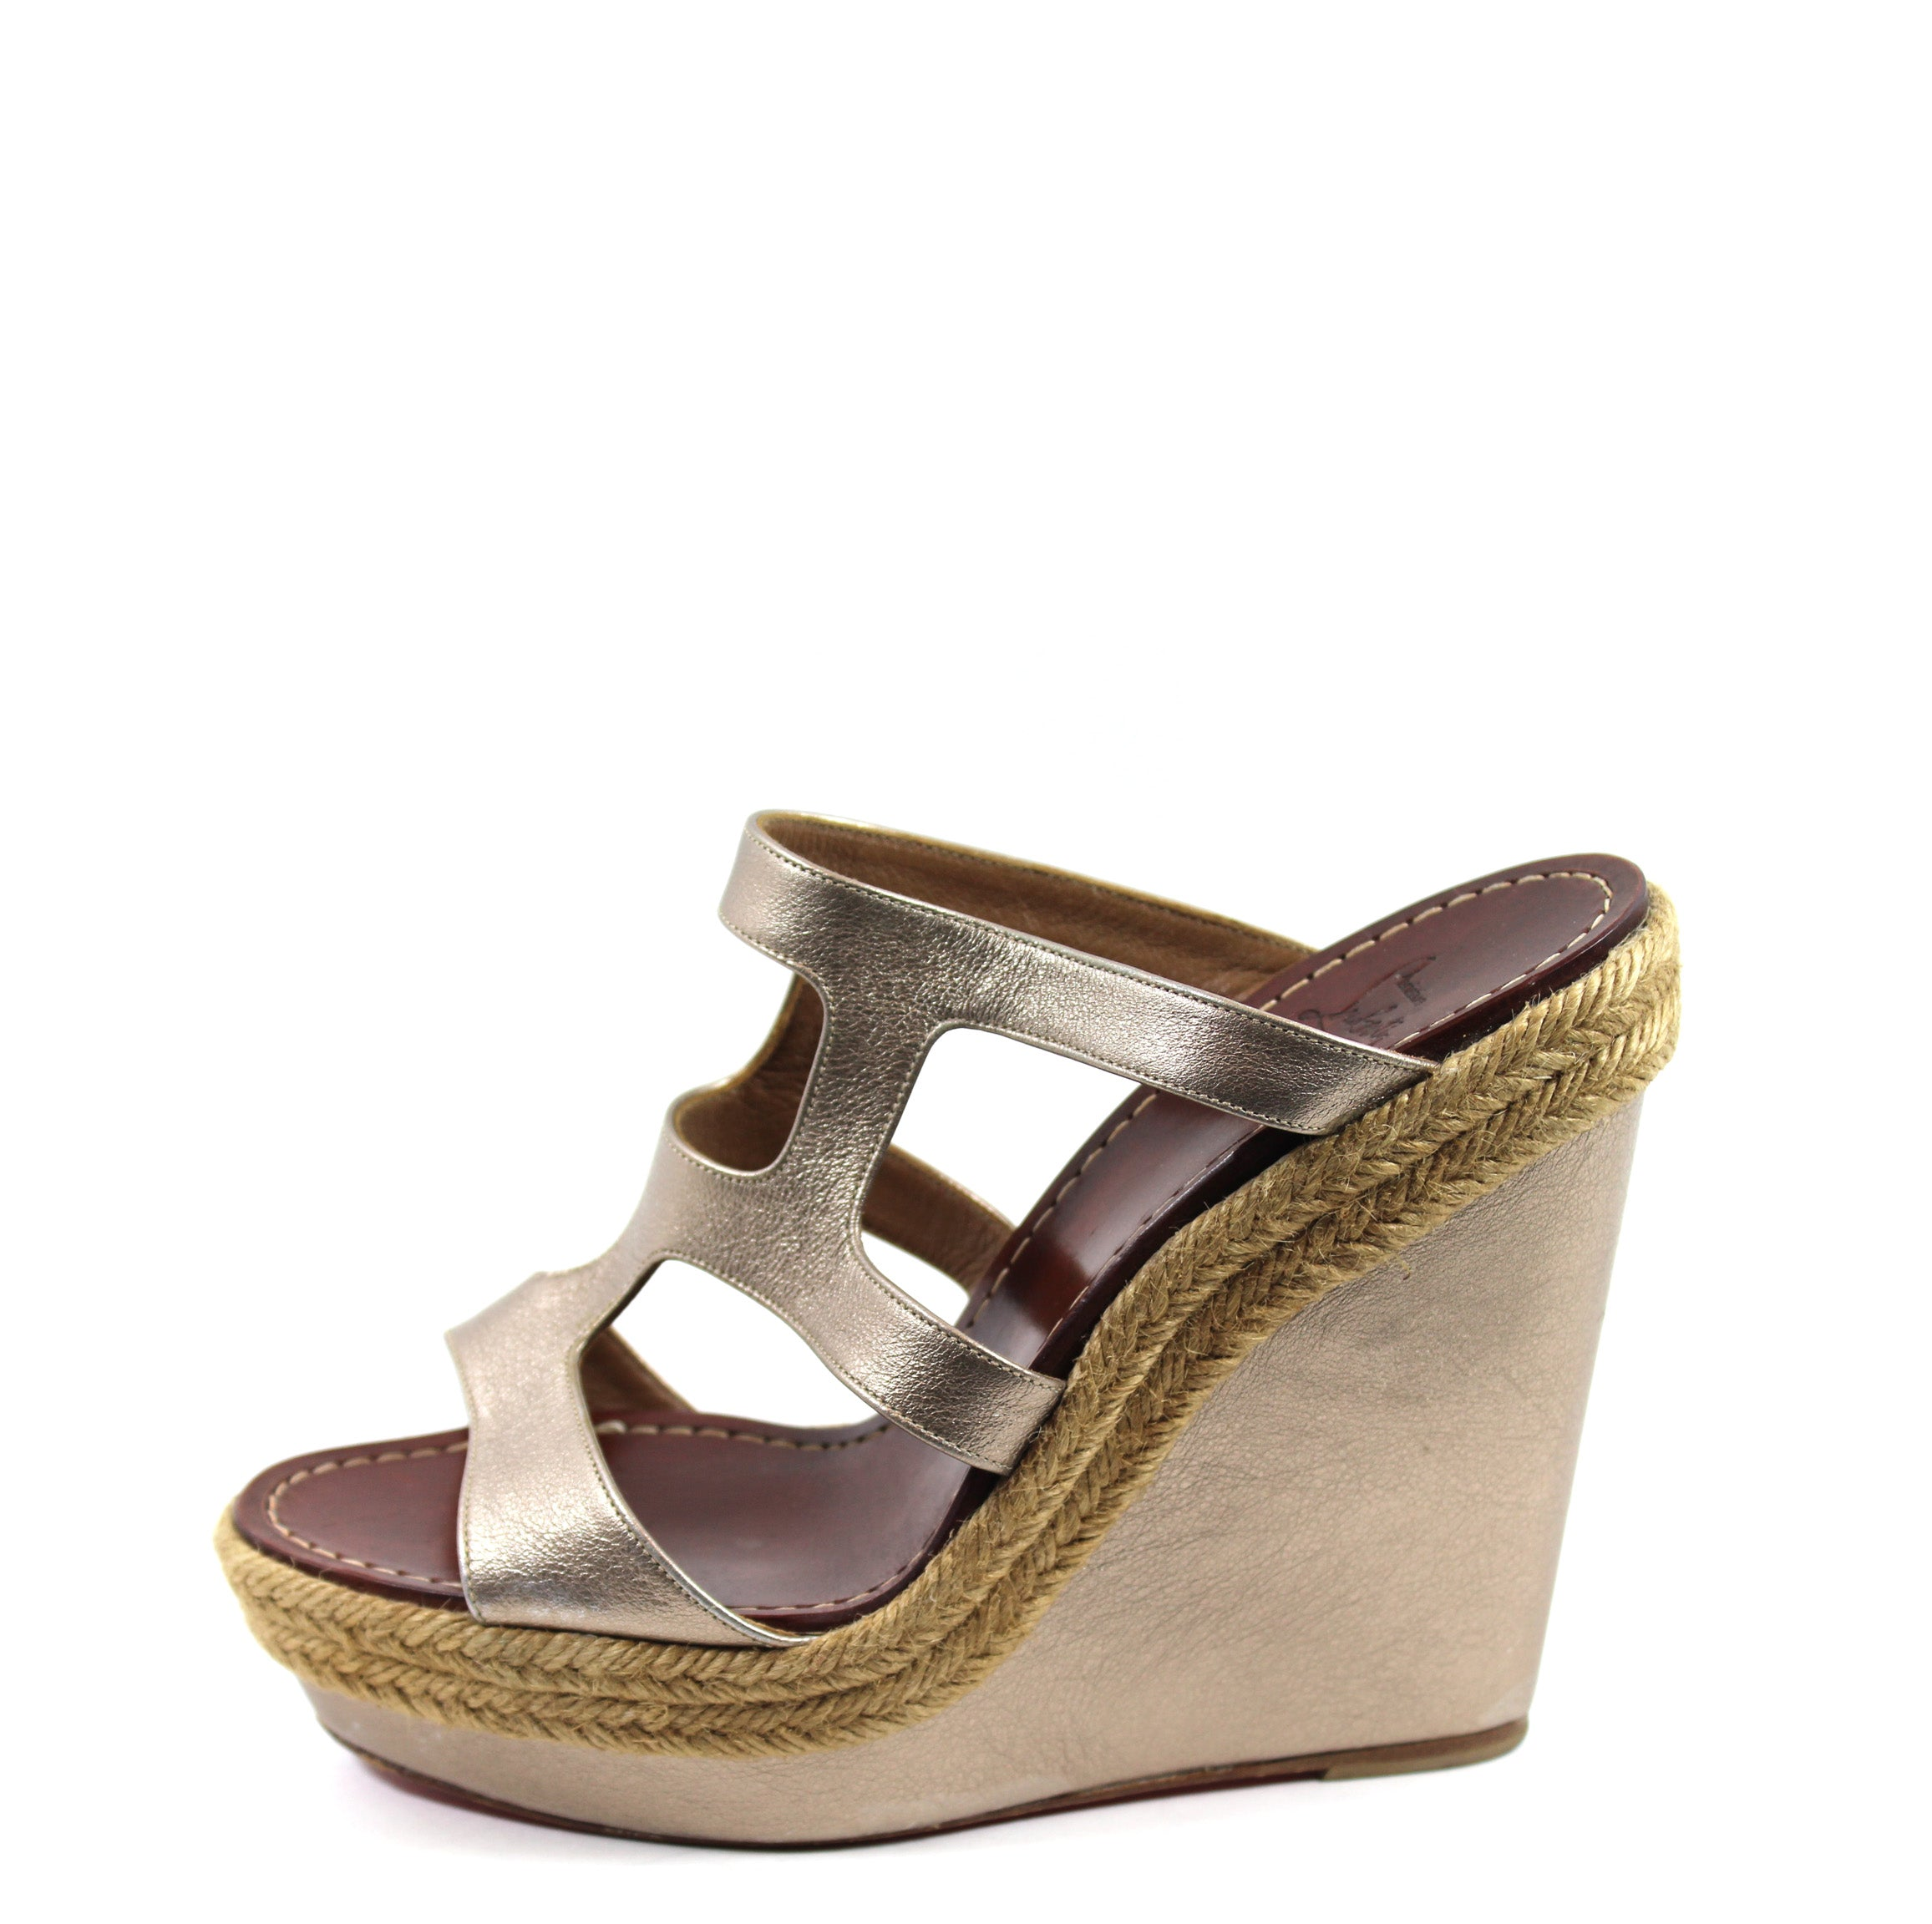 66e43bb8aa5 Christian Louboutin Gold Cut-out Leather Platform Wedges (Size 39) – Encore  Consignment